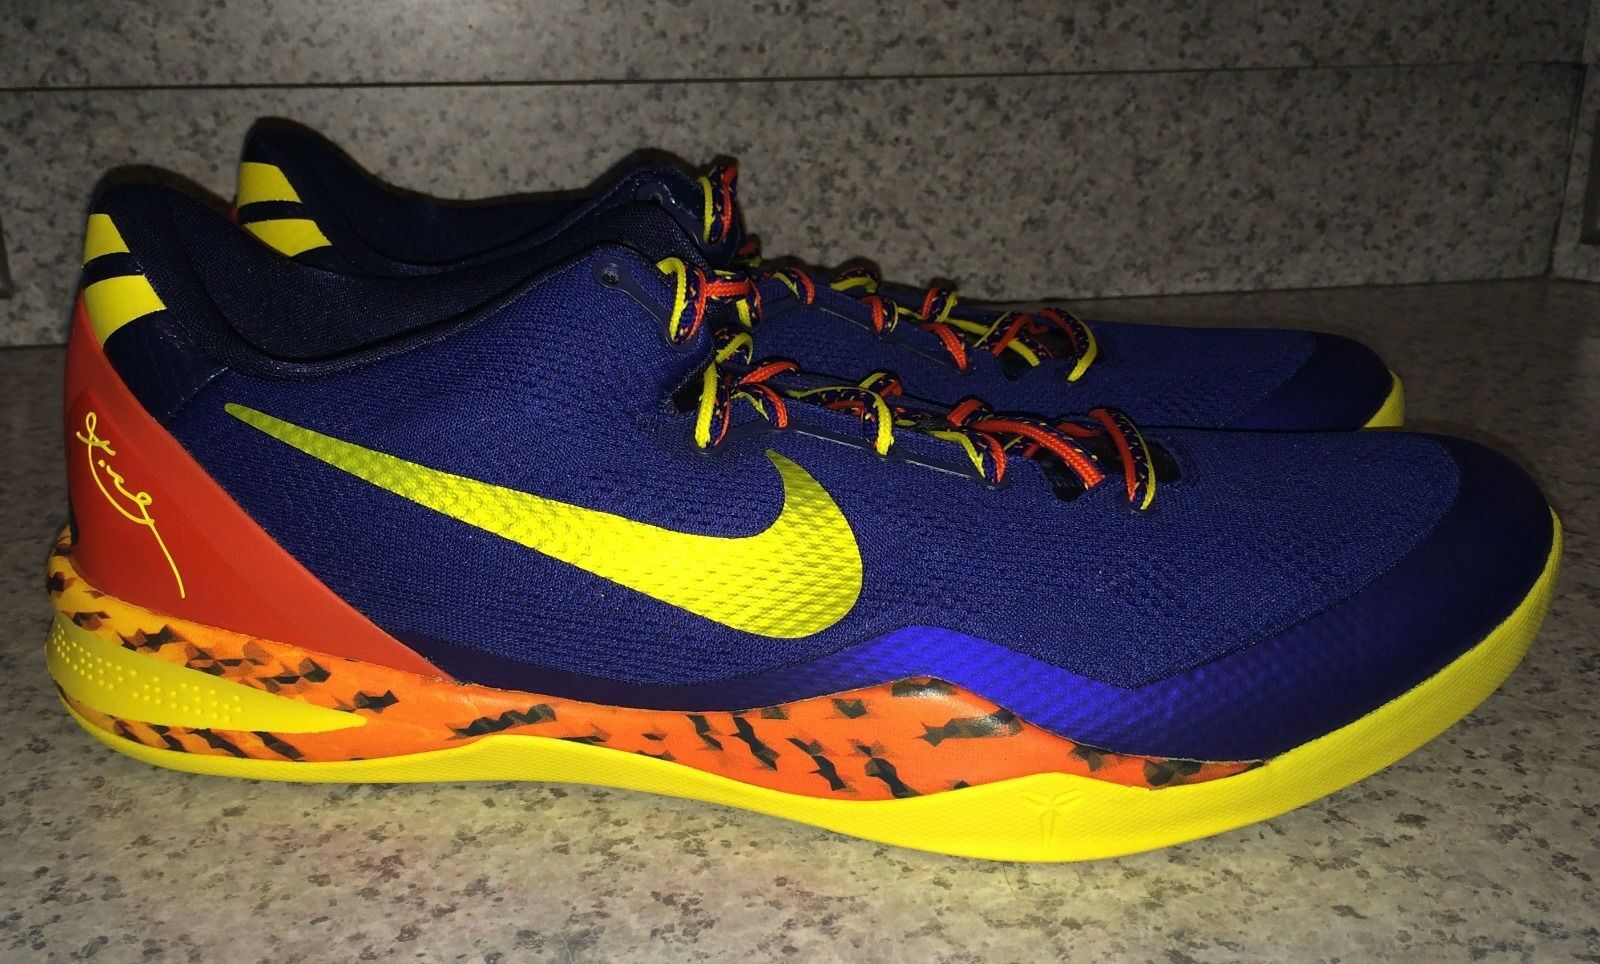 NIKE KOBE 8 System Low bluee Yellow orange Basketball shoes Sneakers NEW Mens 18